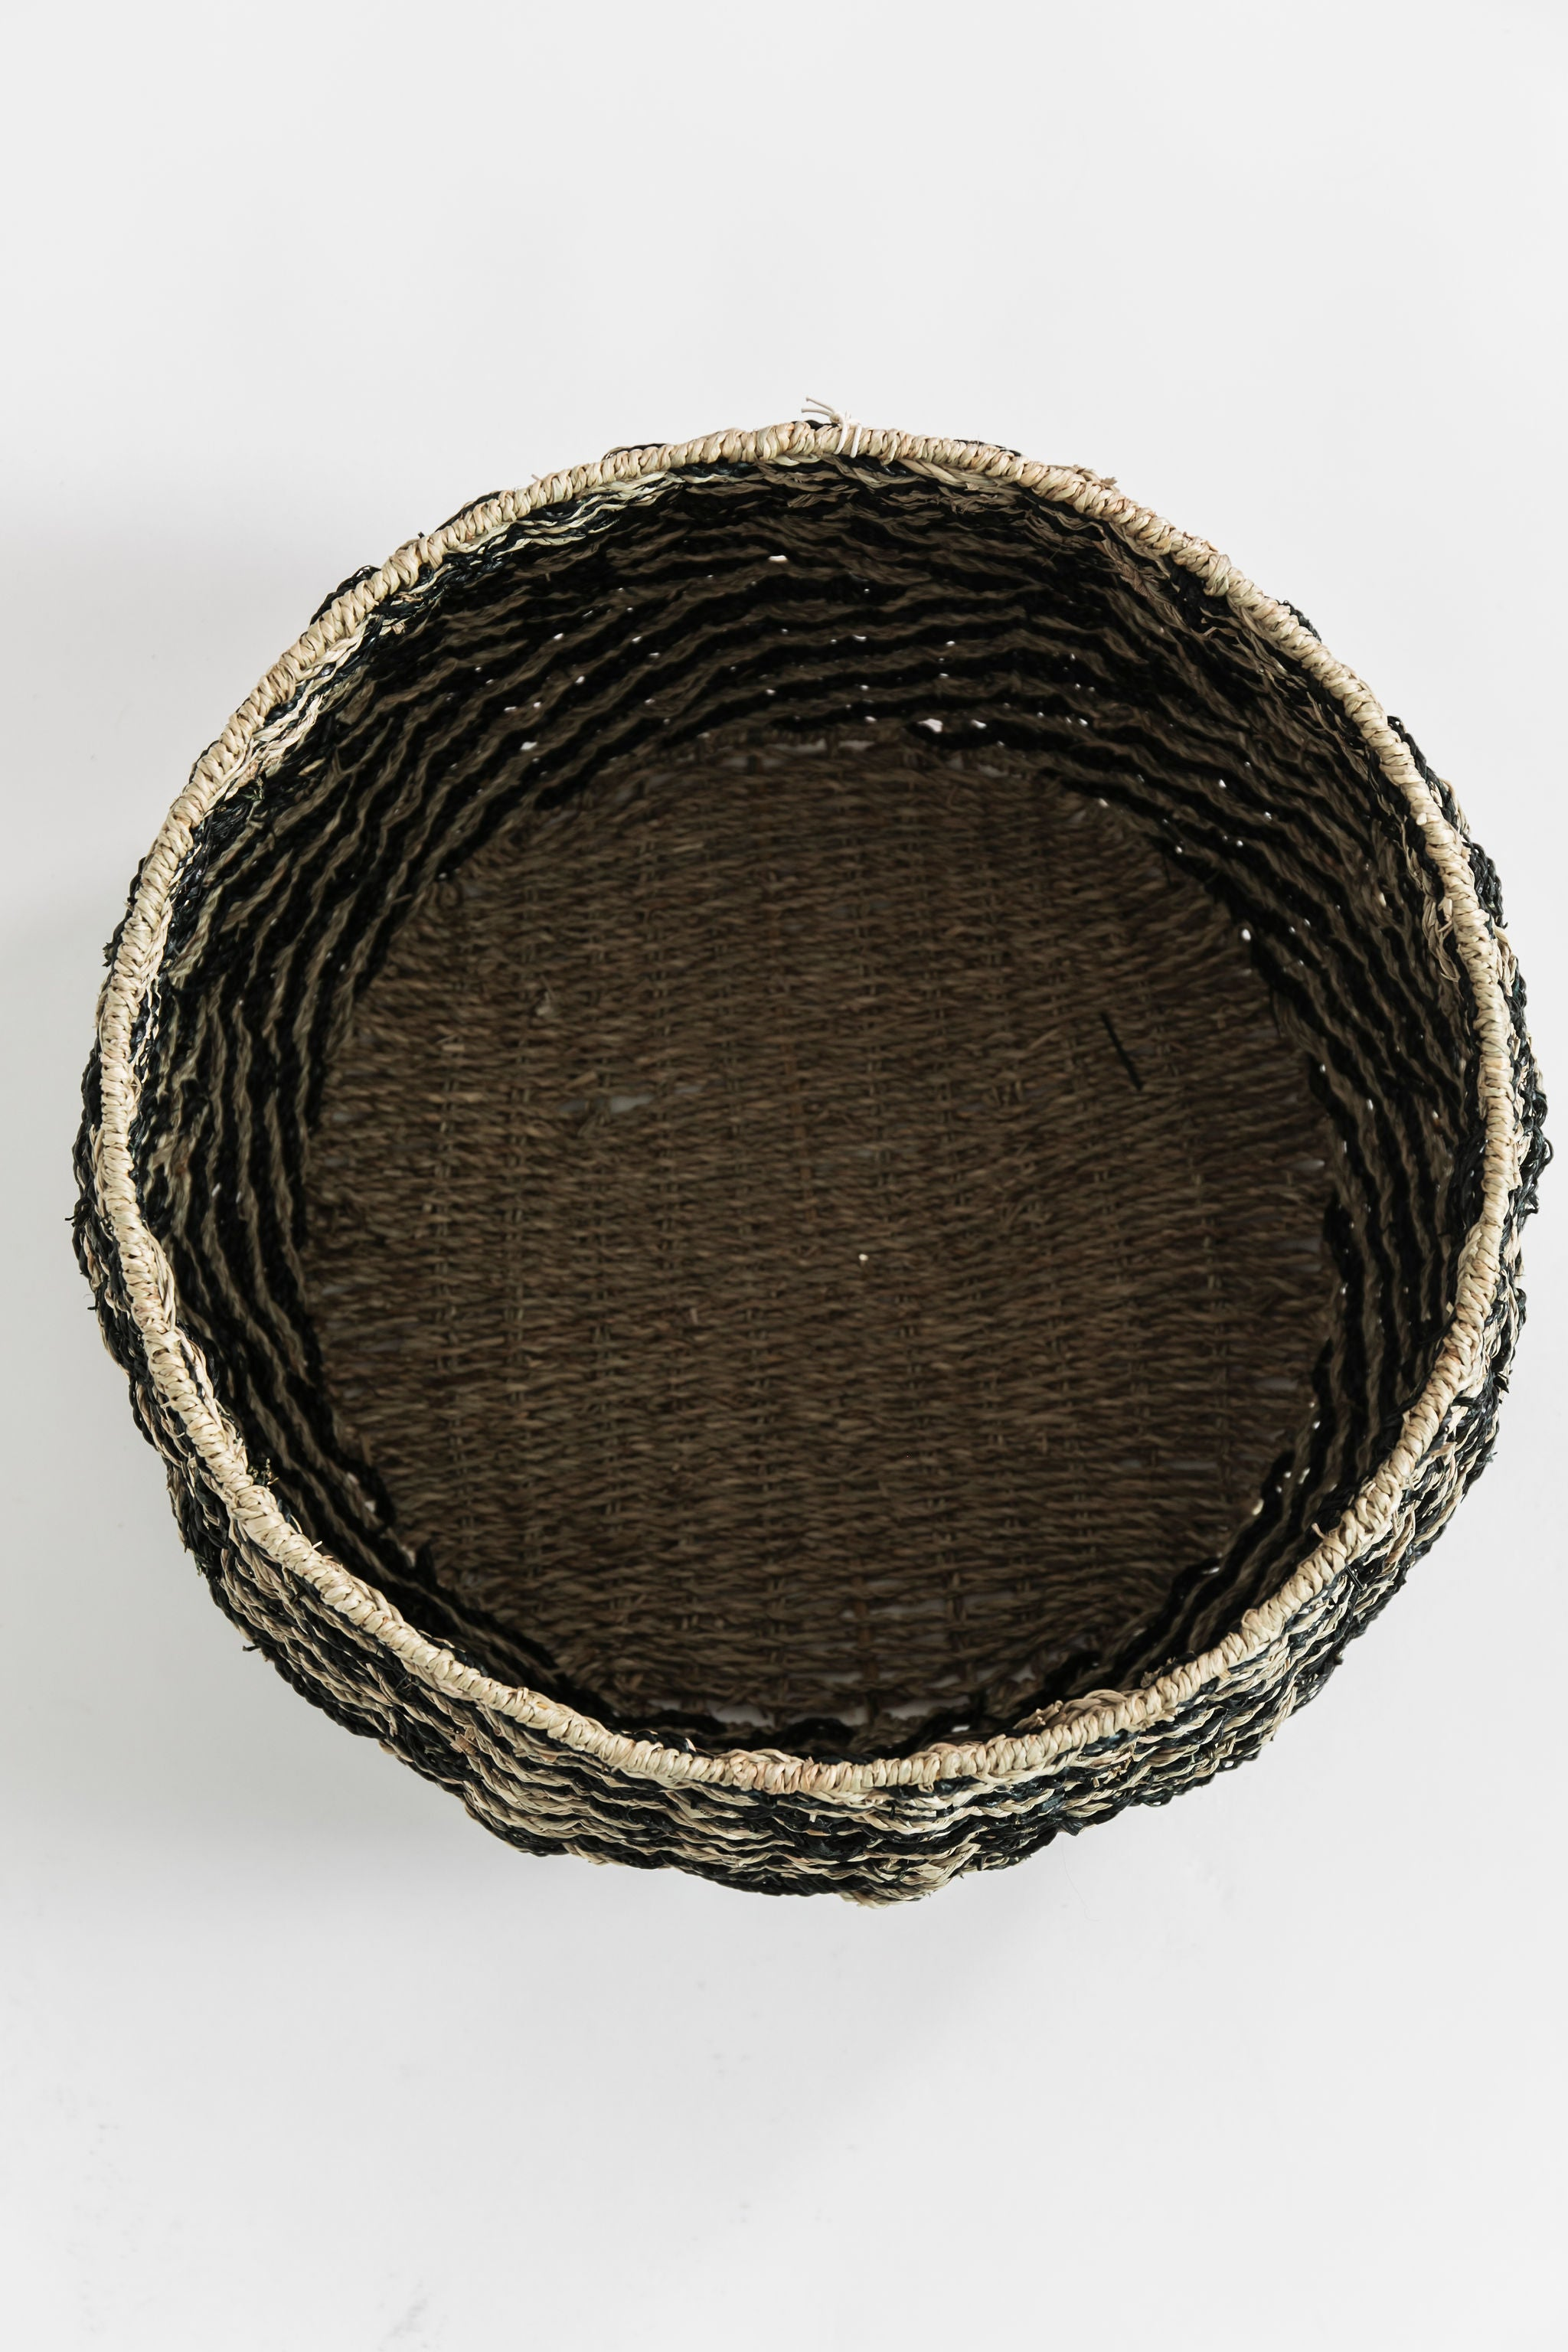 Chevron Woven Seagrass Basket- Large